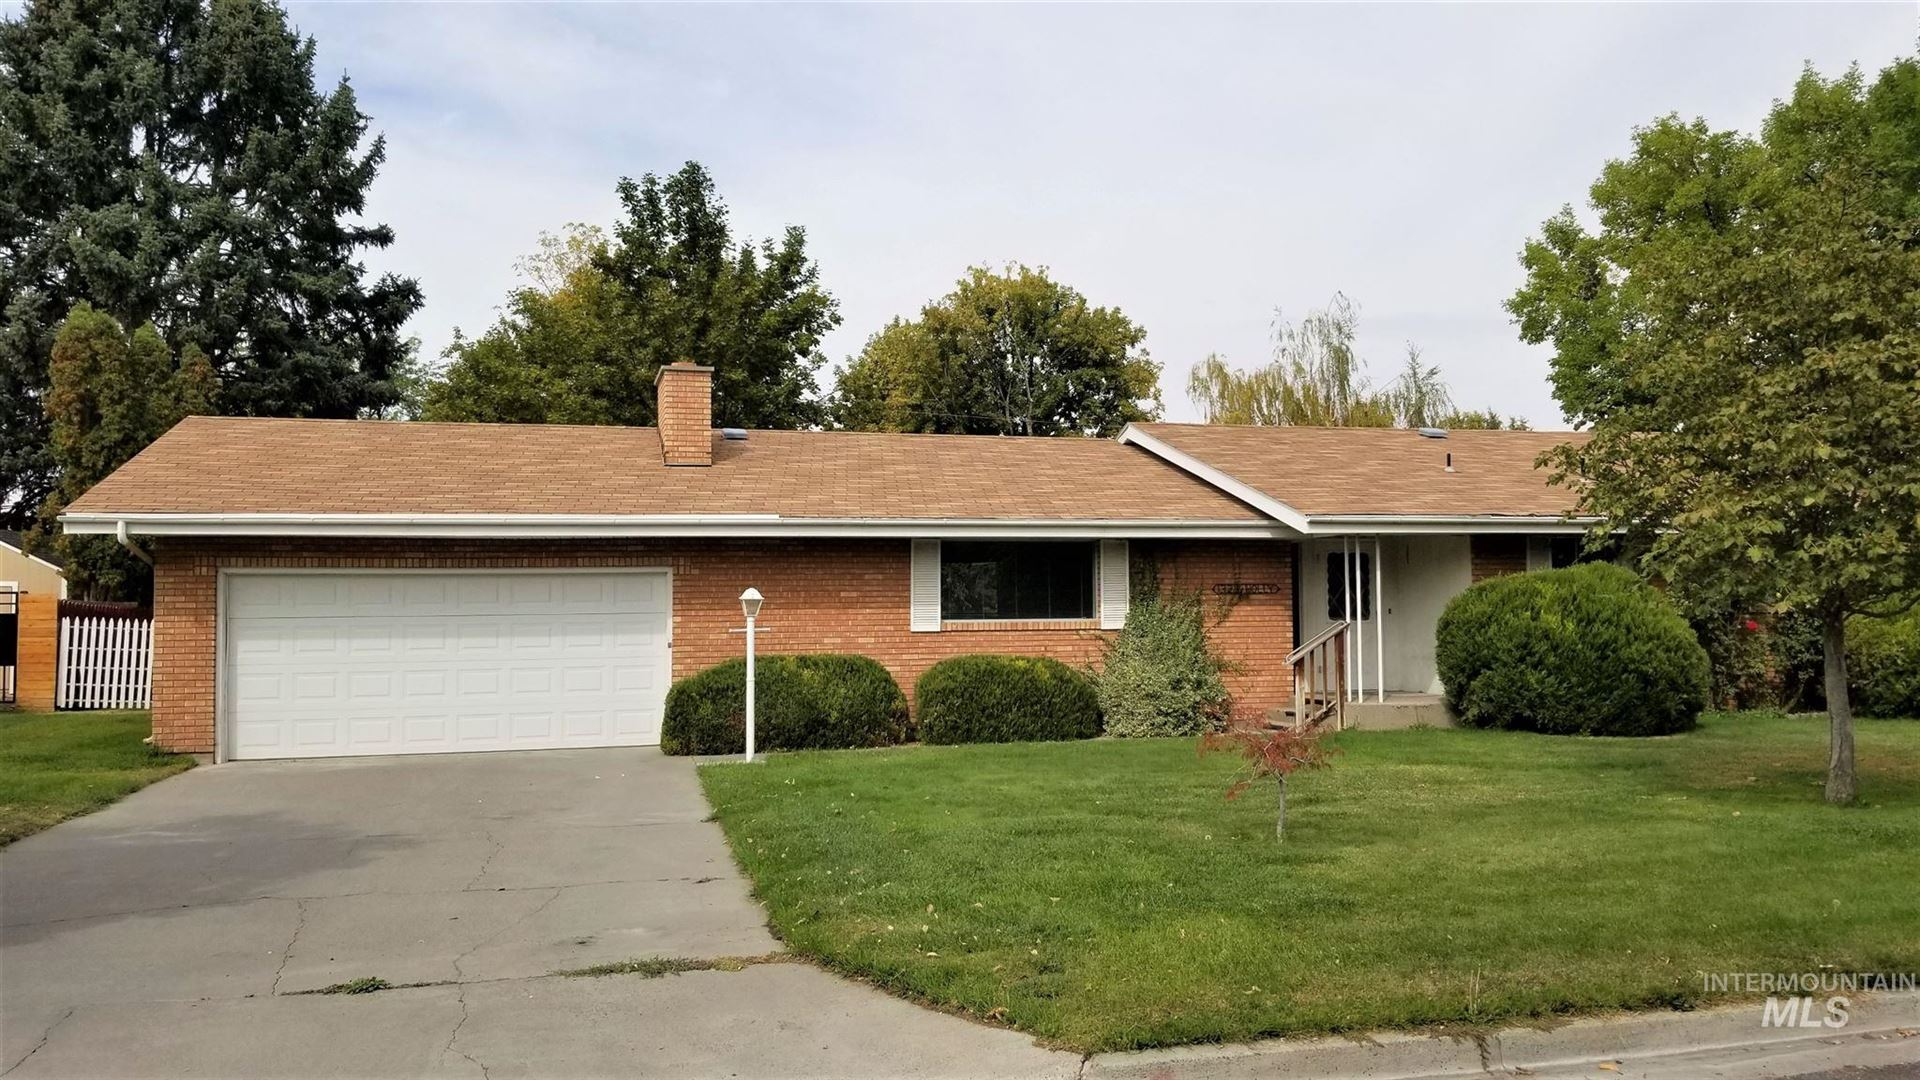 Photo of 1323 Holly, Twin Falls, ID 83301-3433 (MLS # 98782254)